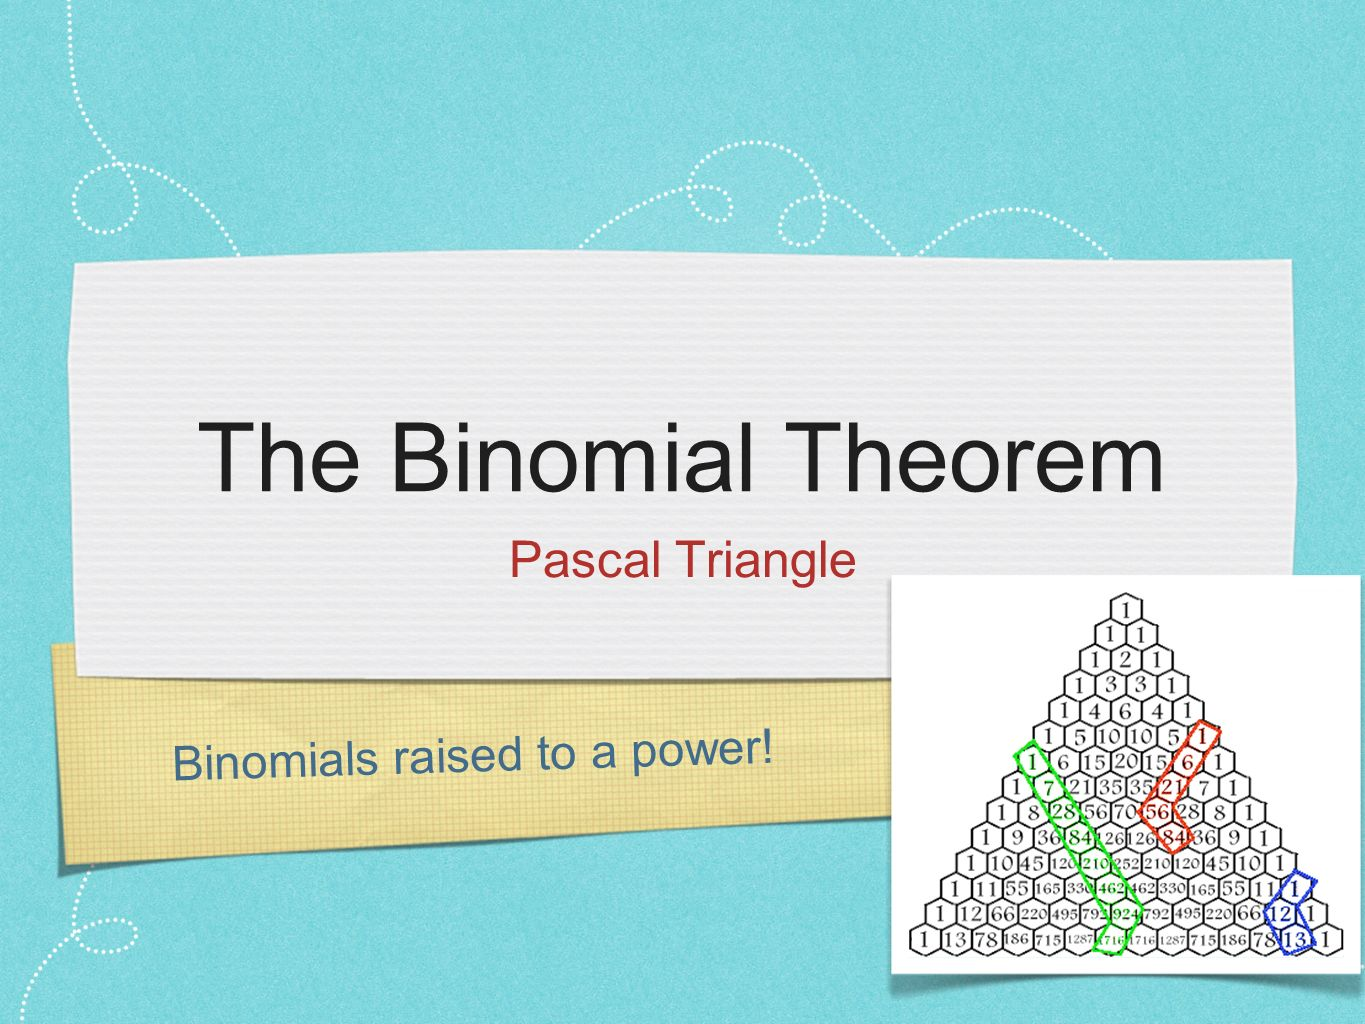 The Binomial Theorem Pascal Triangle Binomials raised to a power!